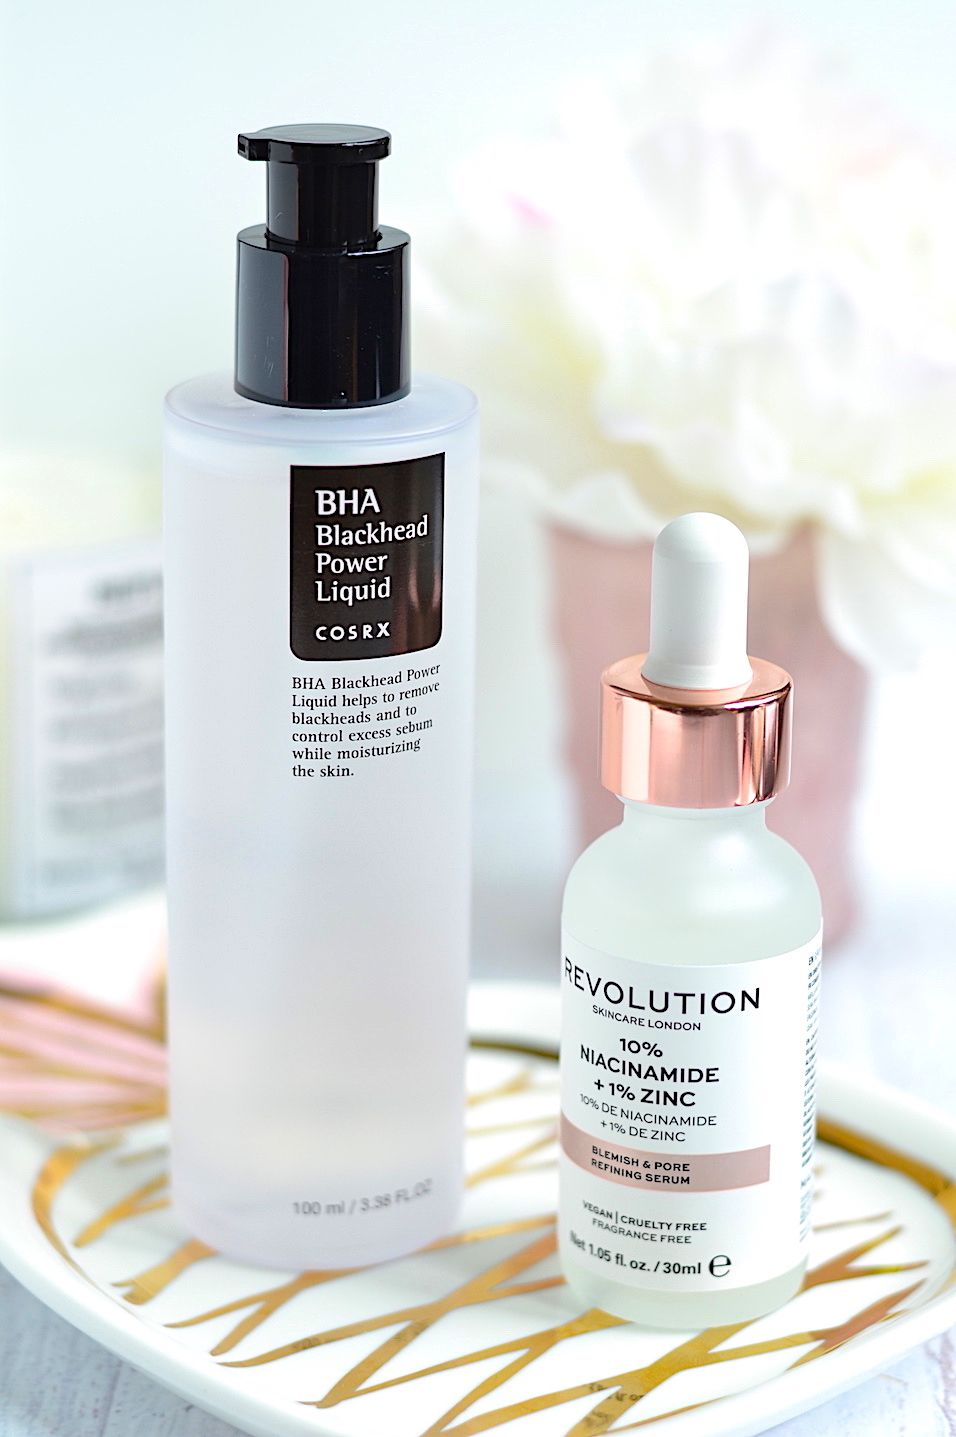 Pore Problems These Skincare Products Really Work To Reduce Large Pores And Blackheads In 2020 Large Pores Beauty Products Drugstore Skin Care